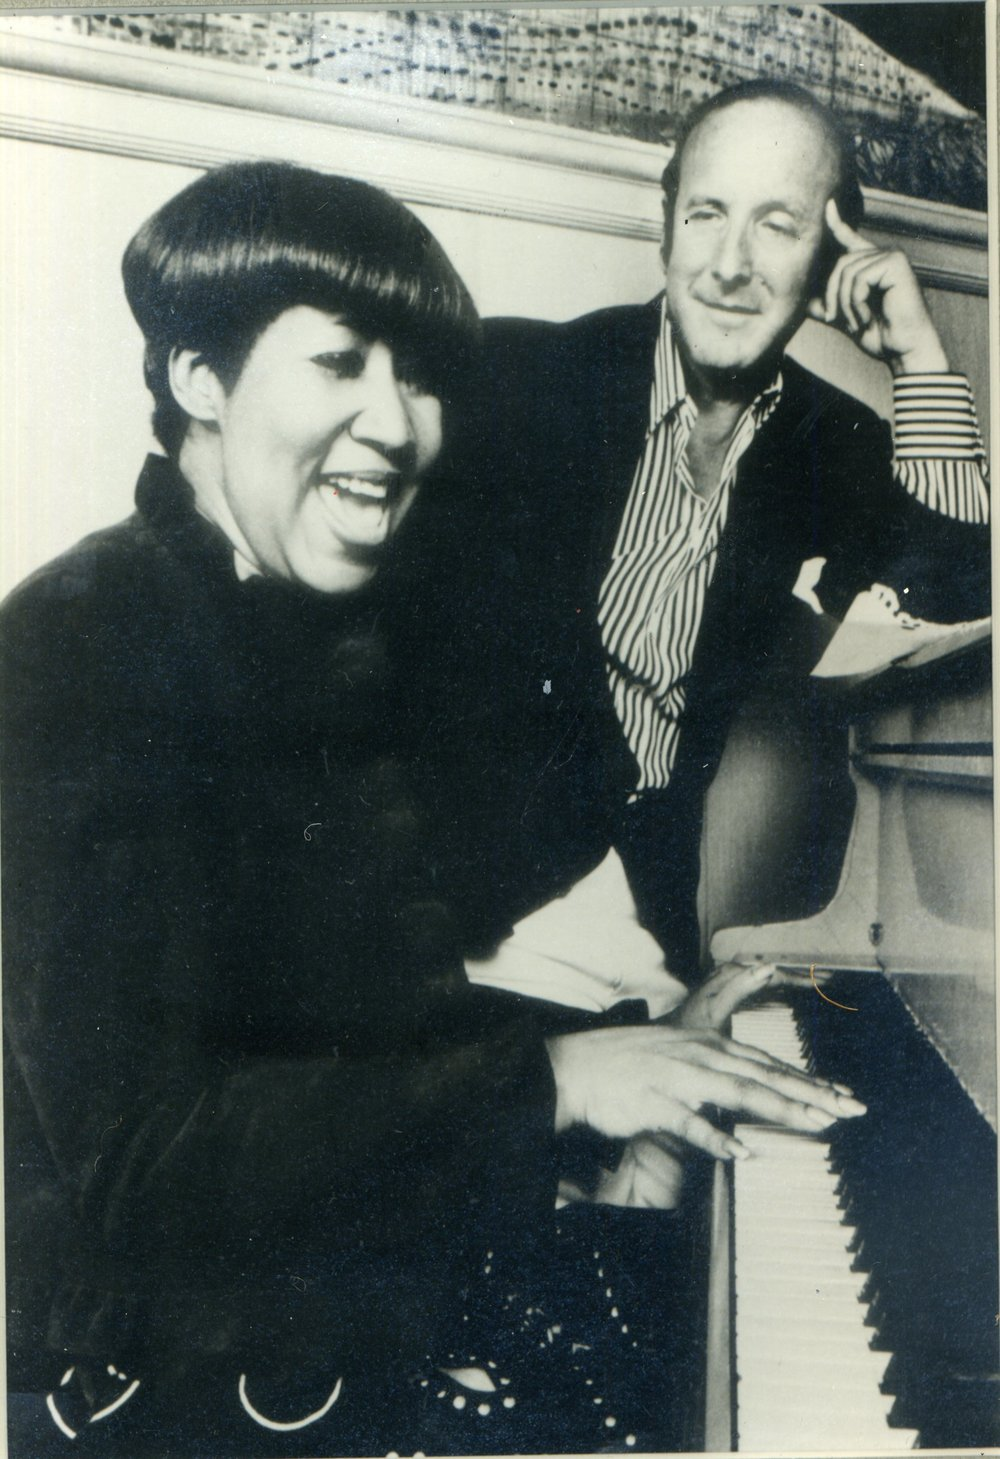 Since Aretha Franklin left Atlantic Records in 1979, many of her most successful records have been executive-produced by Clive Davis